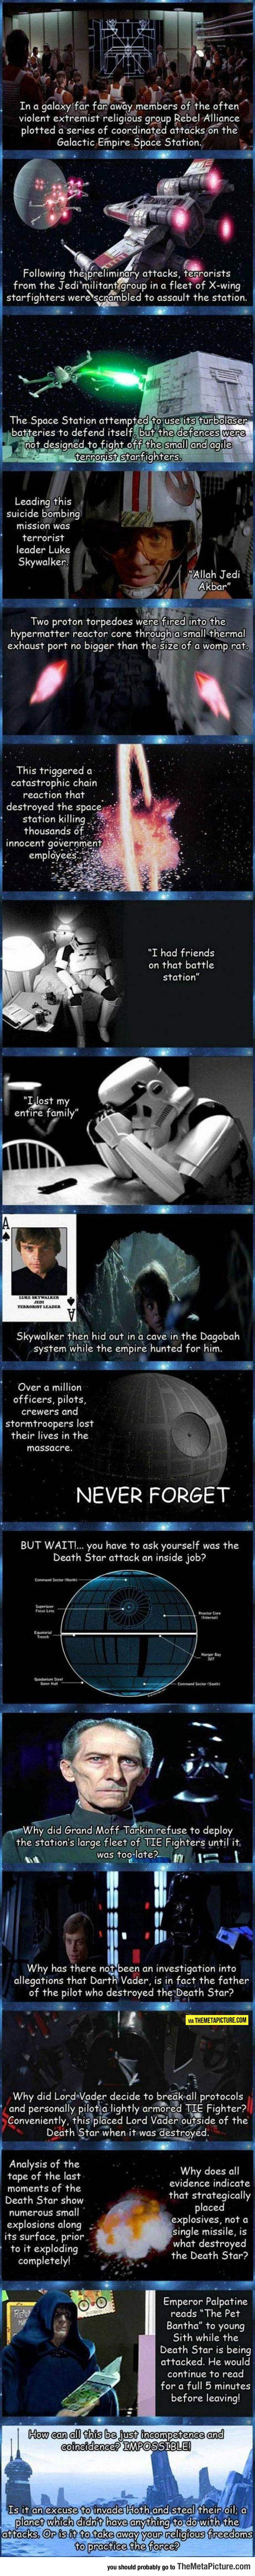 cool-Star-Wars-conspiracy-Death-Star